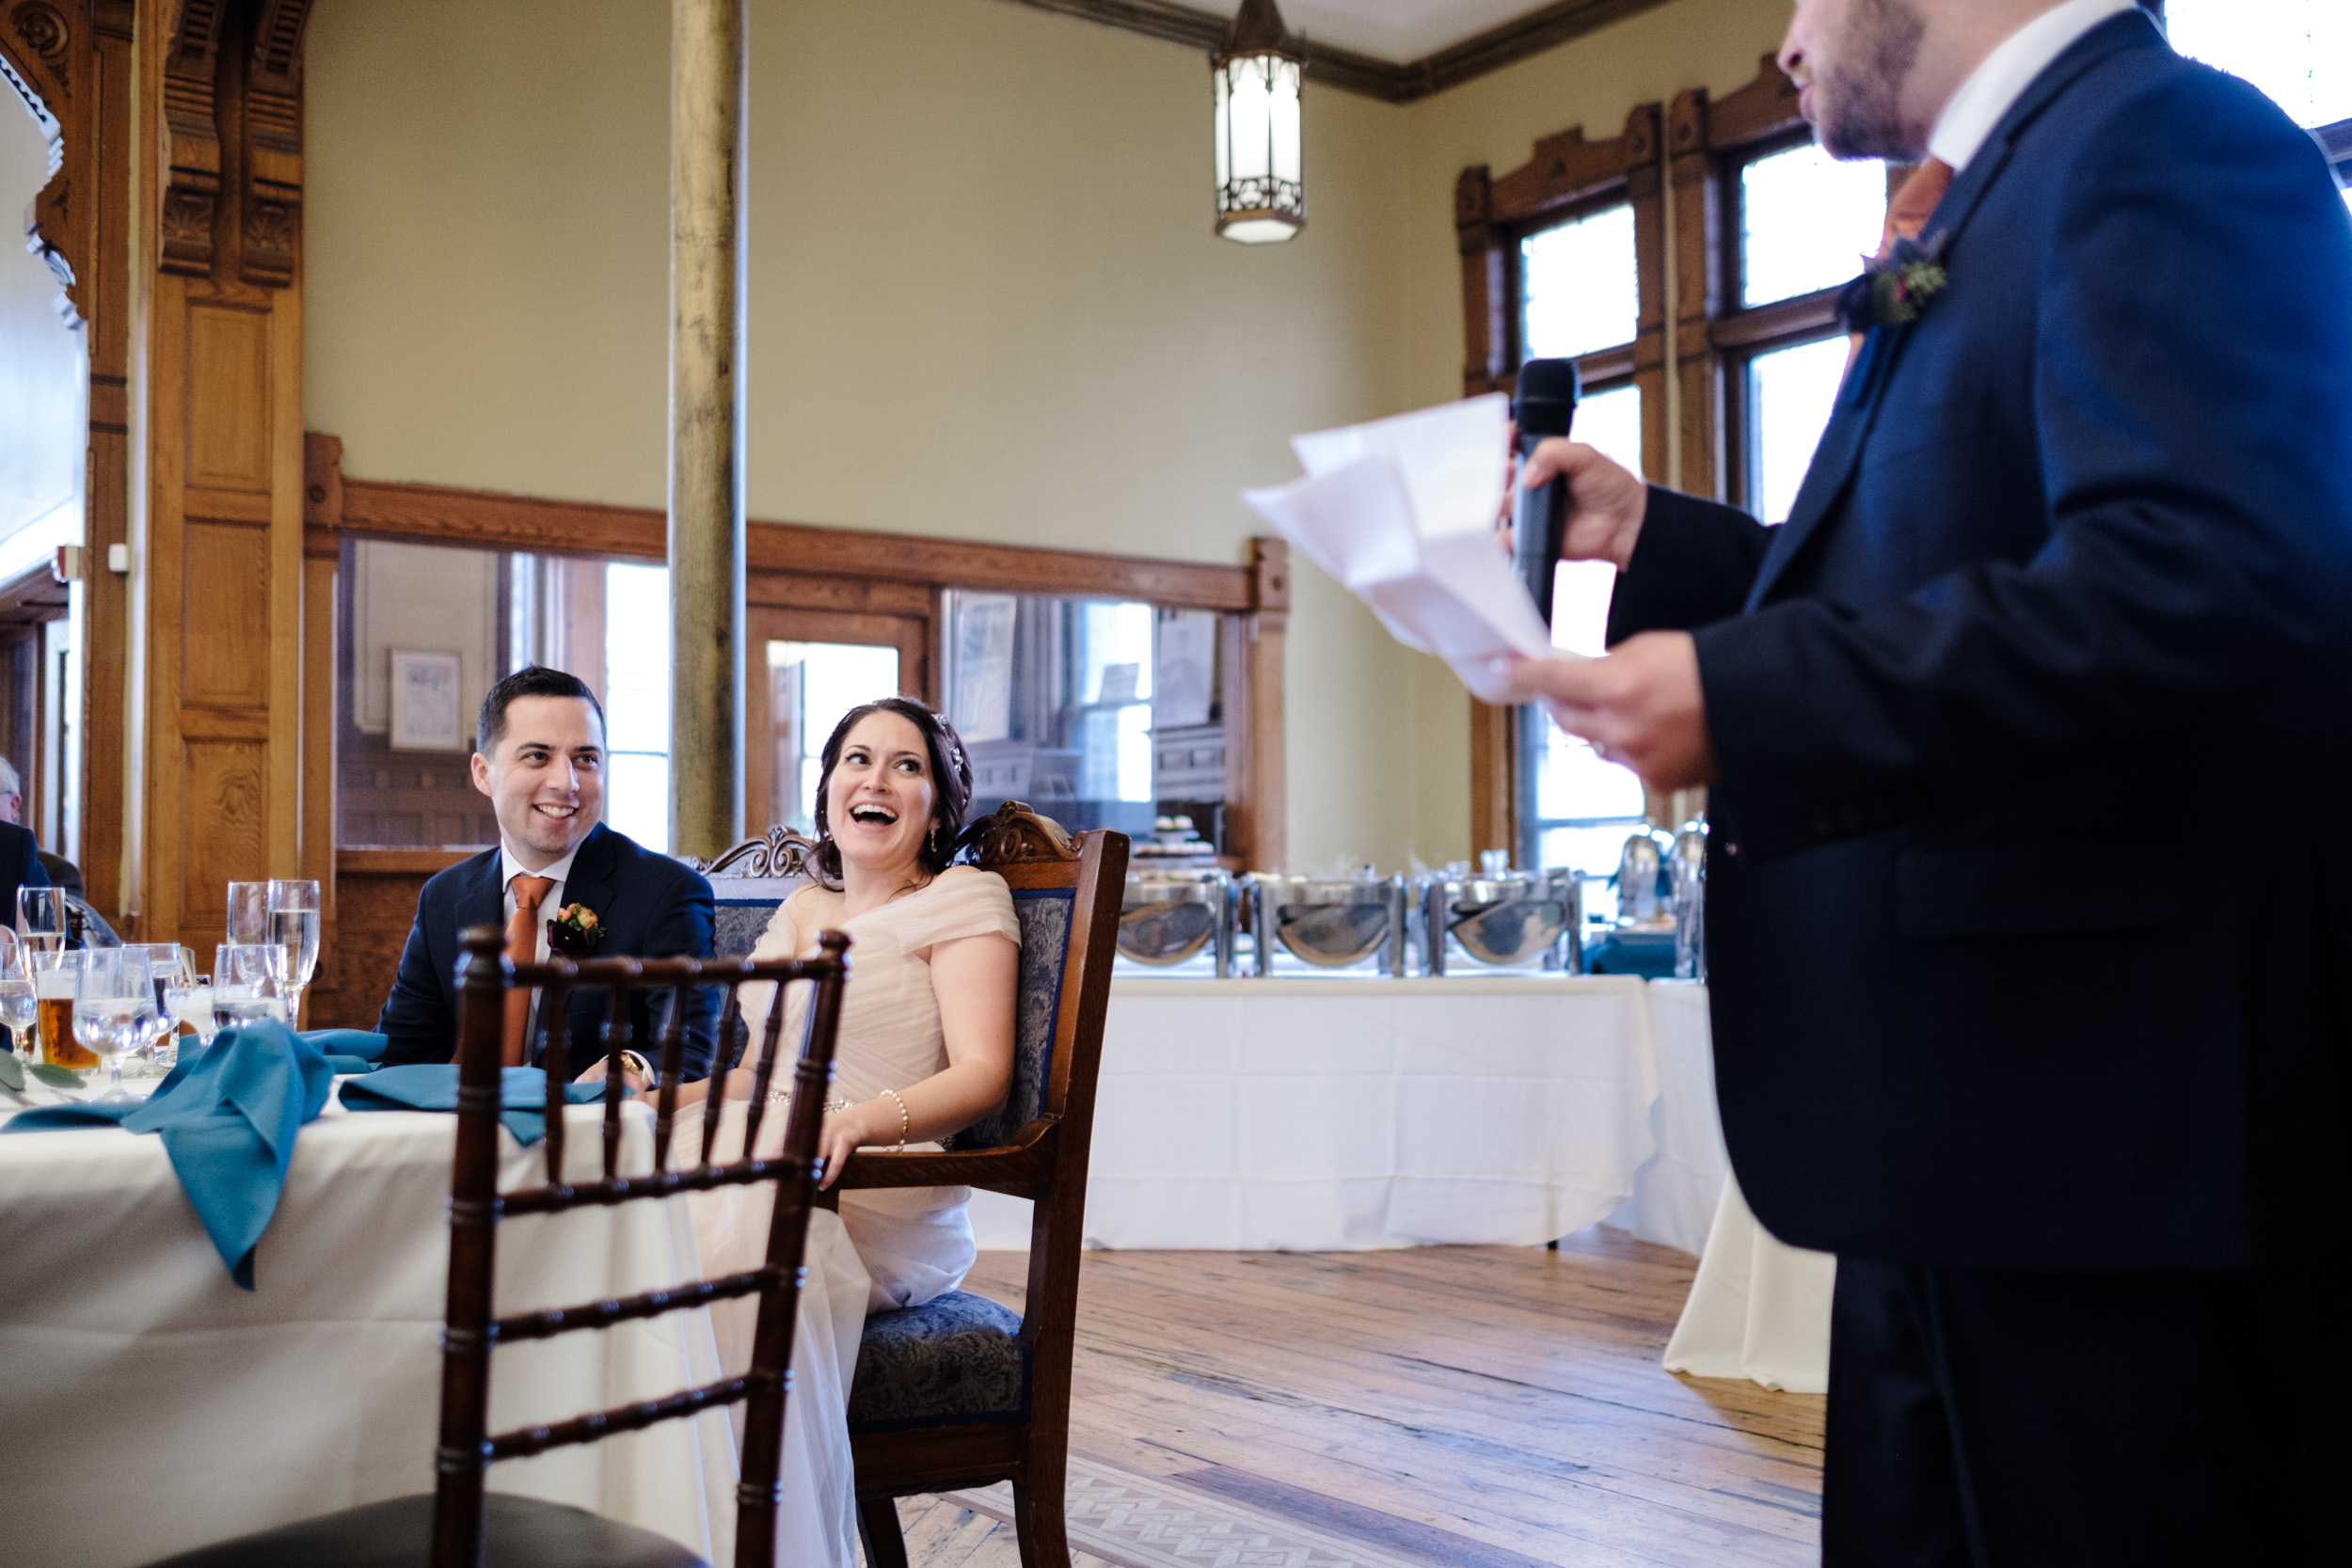 laughing candid wedding photo of couple at table during speech at pabst best place.